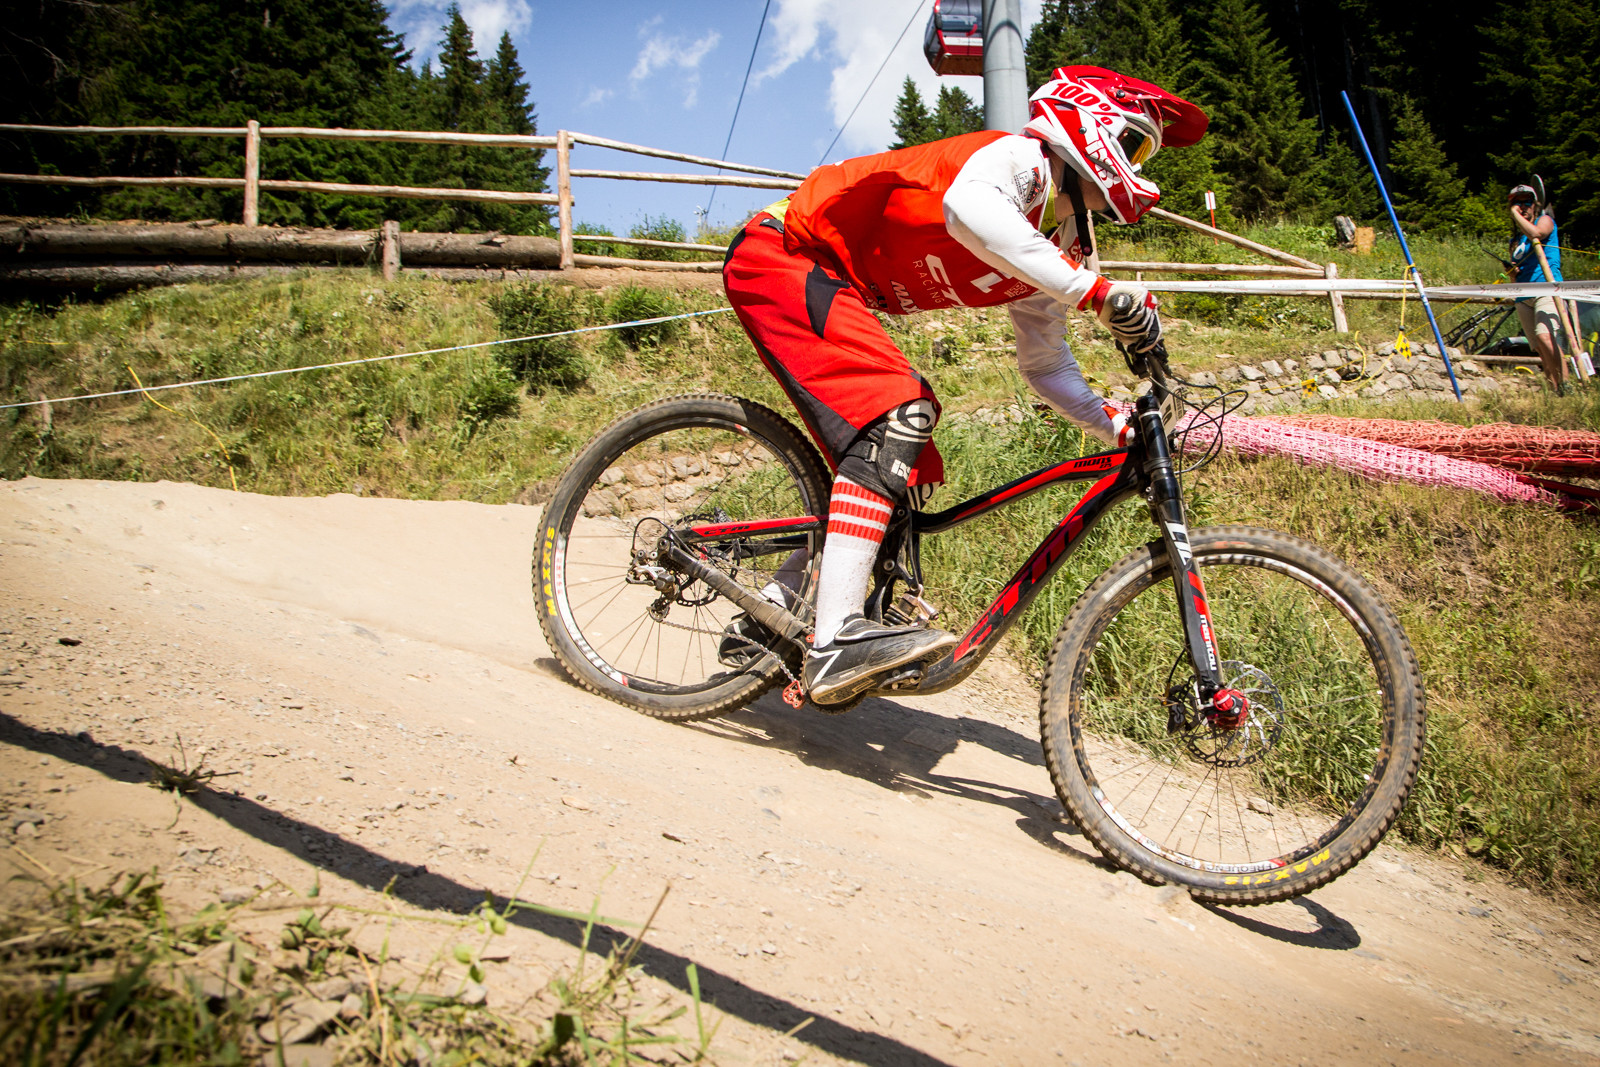 G-Out Project, Lenzerheide World Cup, CTM - G-Out Project - Lenzerheide World Cup - Mountain Biking Pictures - Vital MTB